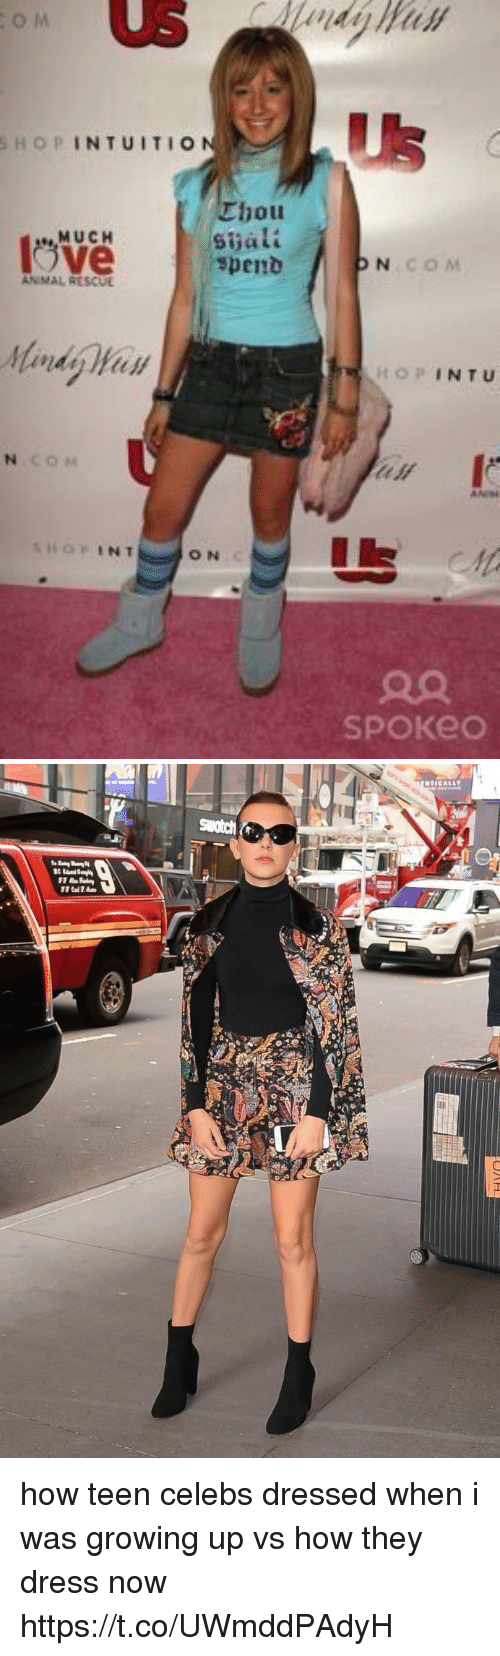 Growing Up, Dress, and Relatable: Us  SHOPINTUITIo  hou  Sijali  spenb  MUCH  vee  COM  HOPINTU  ON  SPOKeO how teen celebs dressed when i was growing up vs how they dress now https://t.co/UWmddPAdyH